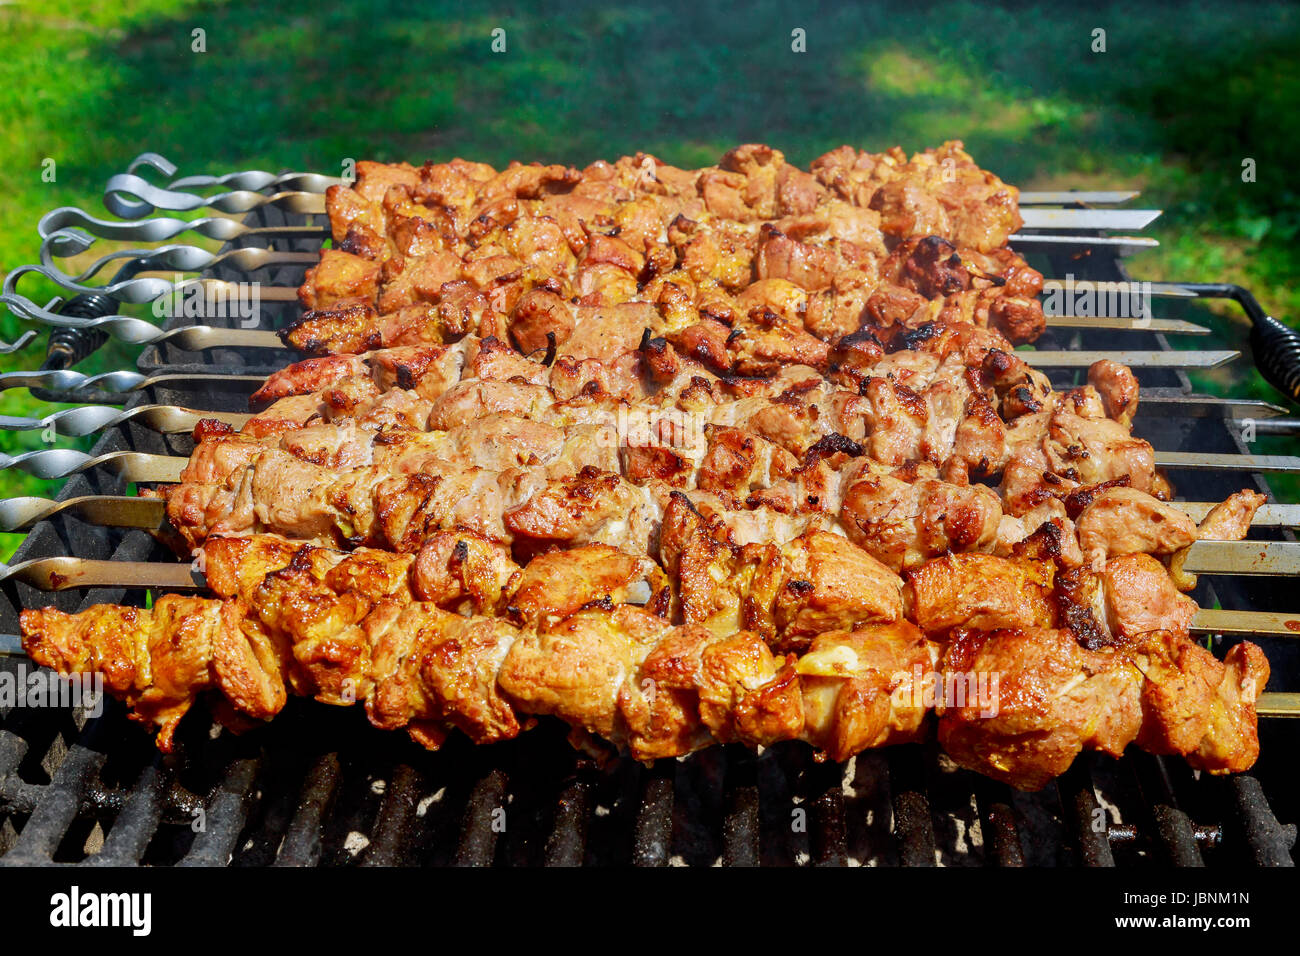 Pork on skewers cooked on barbecue grill. - Stock Image